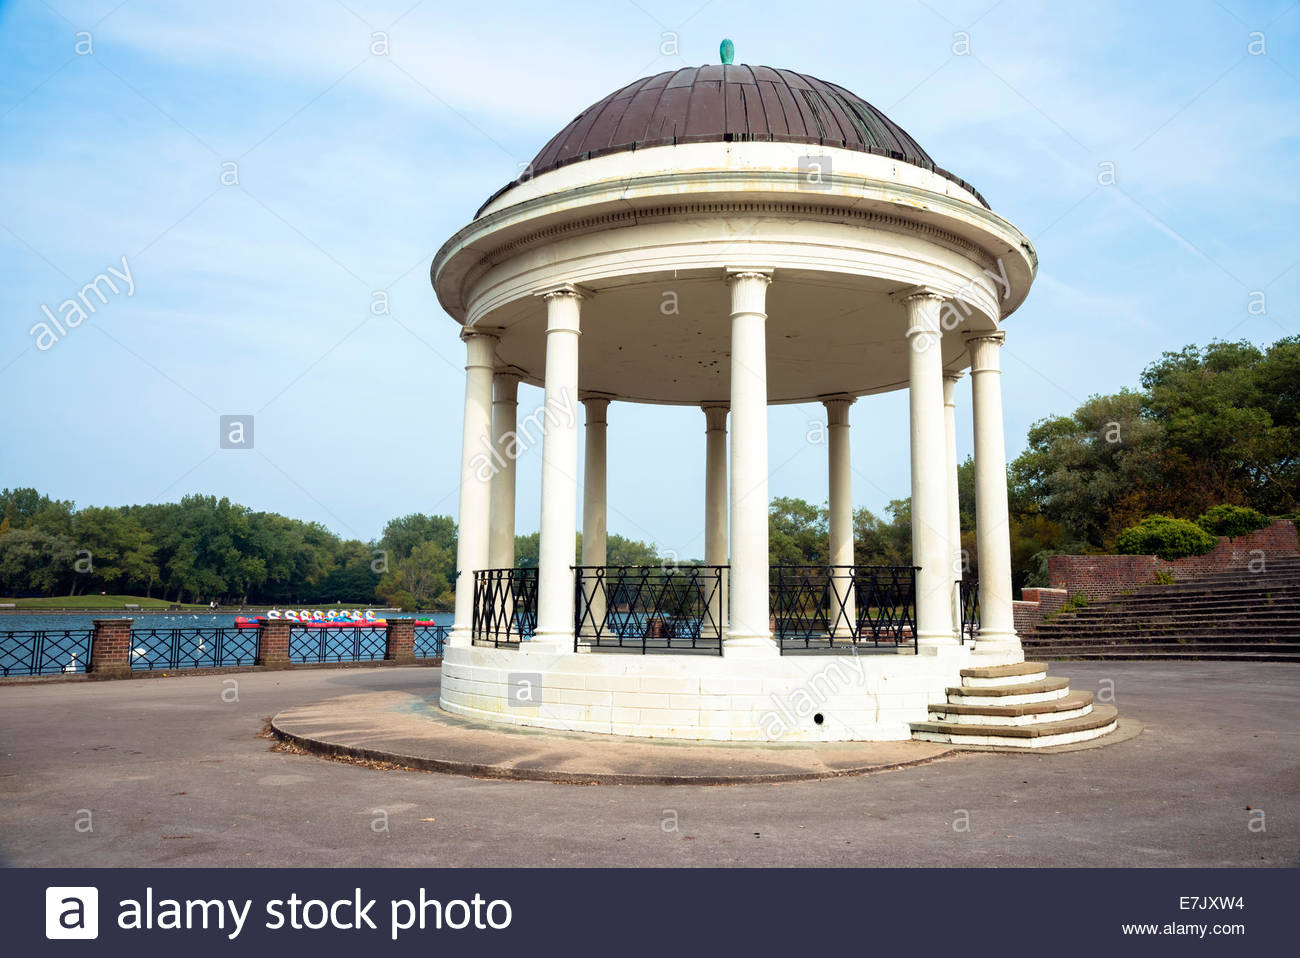 Stanley Park bandstand at Blackpool, Lancashire, UK. - Stock Image